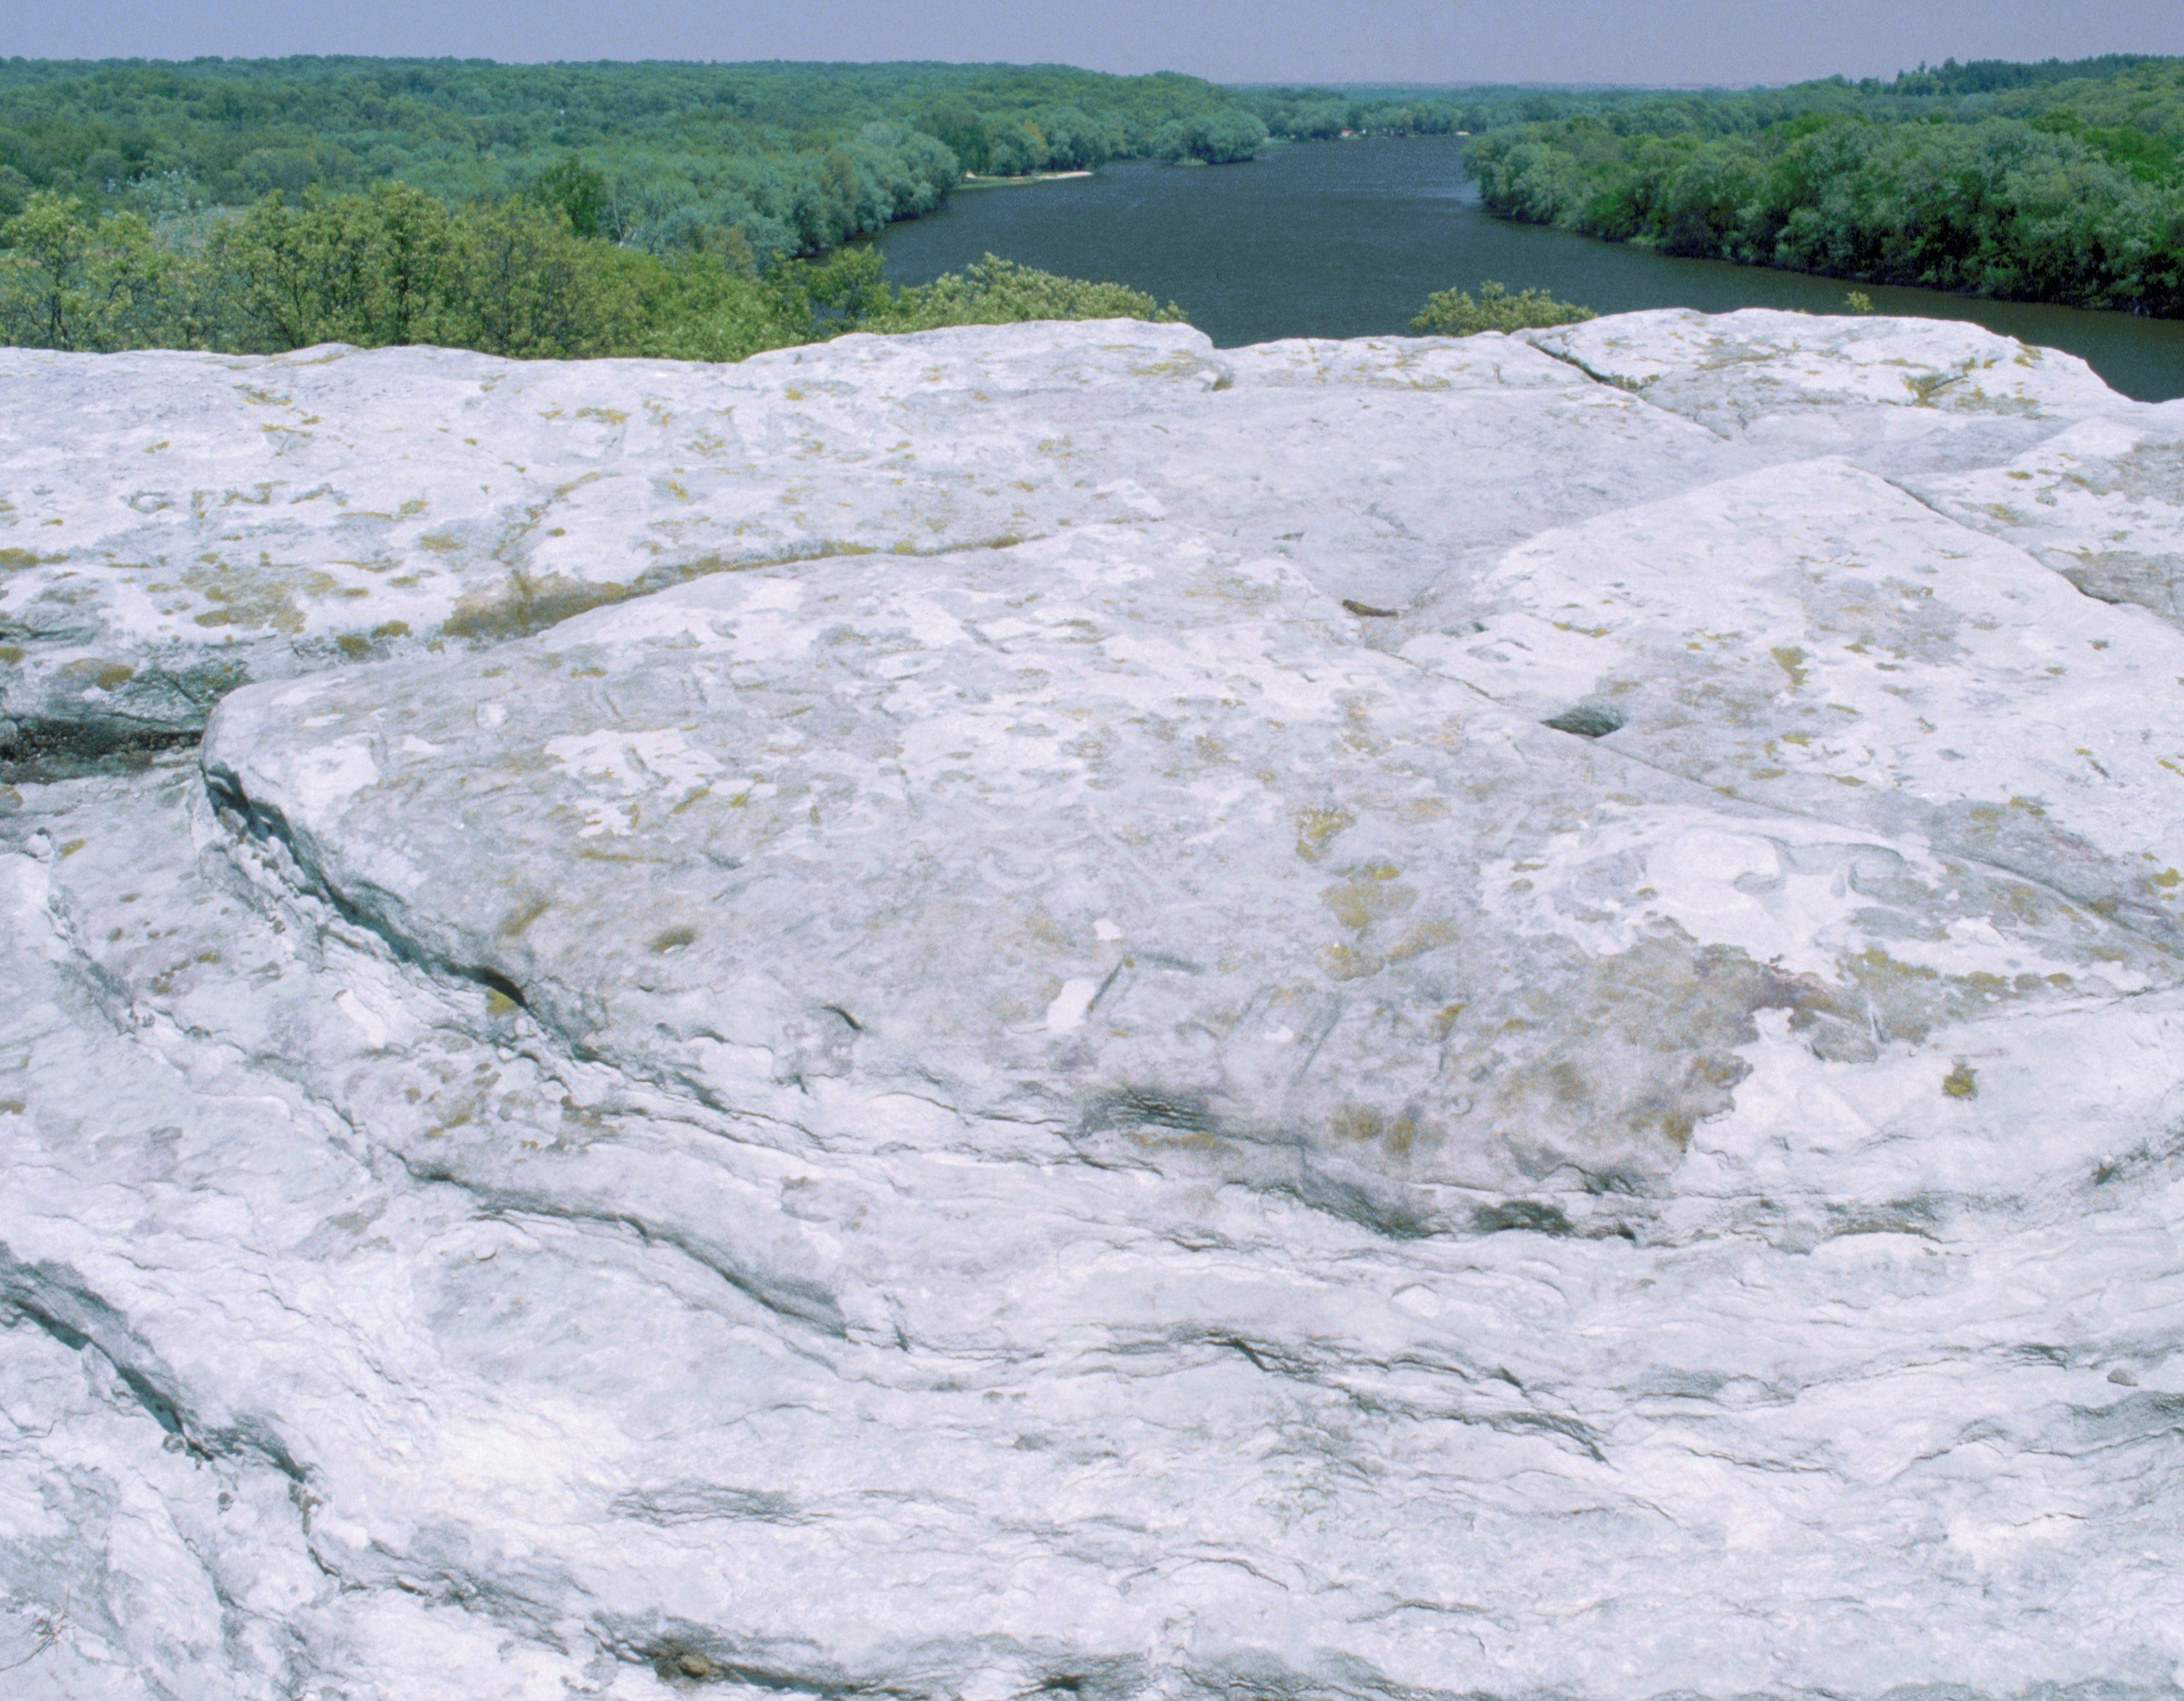 Photo of a rocky overlook at the Castle Rock State Park